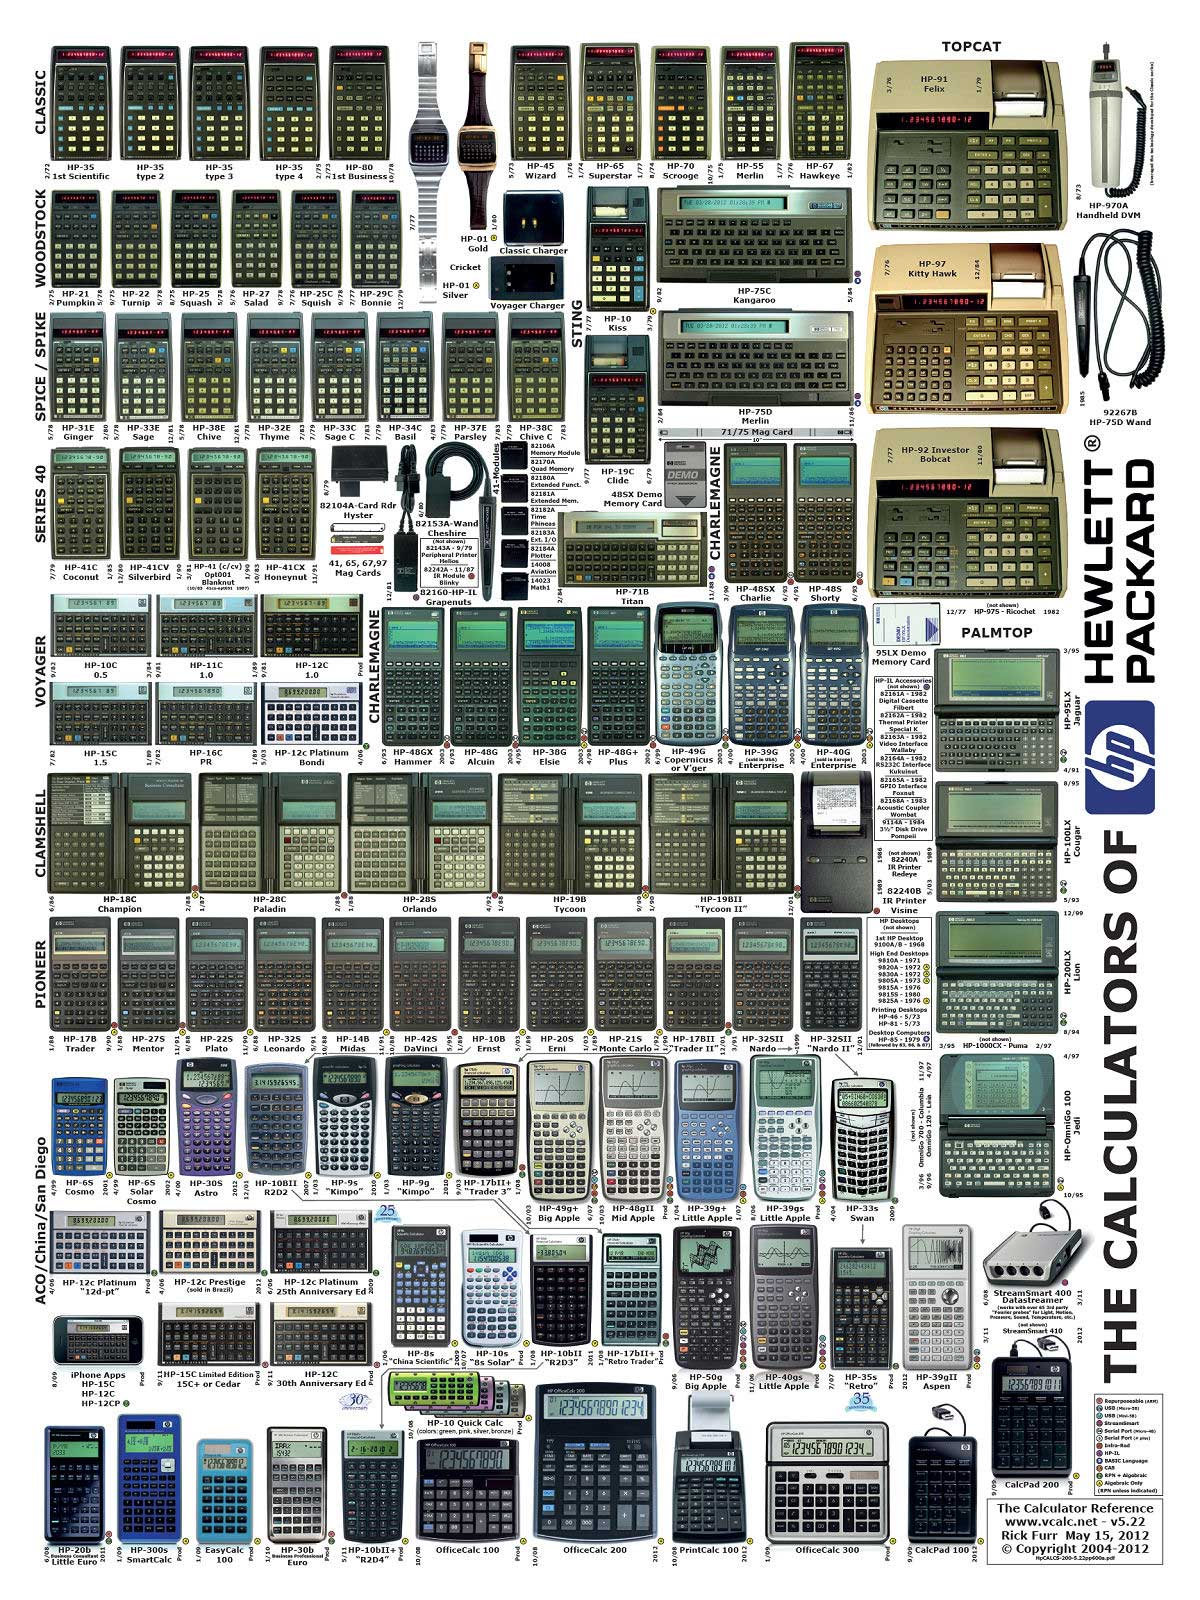 Infographic Evolution Hewlett Packard calculators